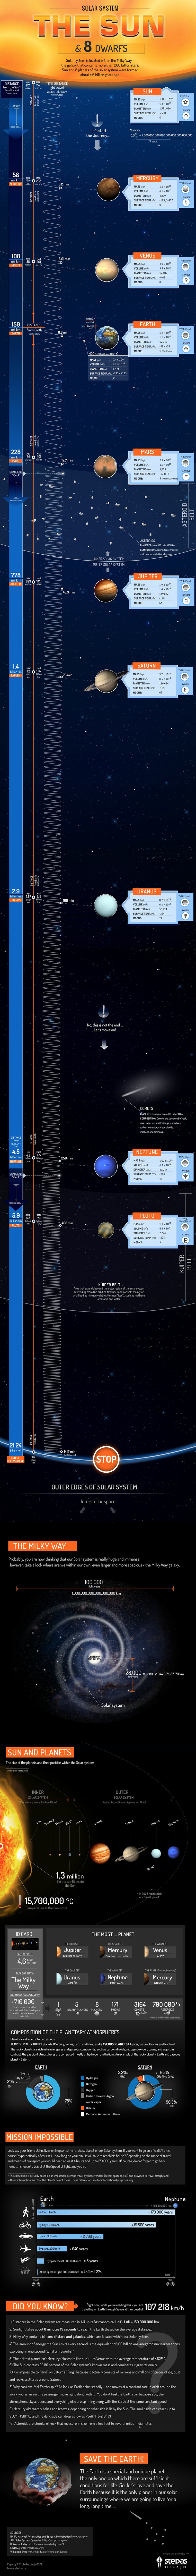 Infographic: Incredible Facts About Our Solar System